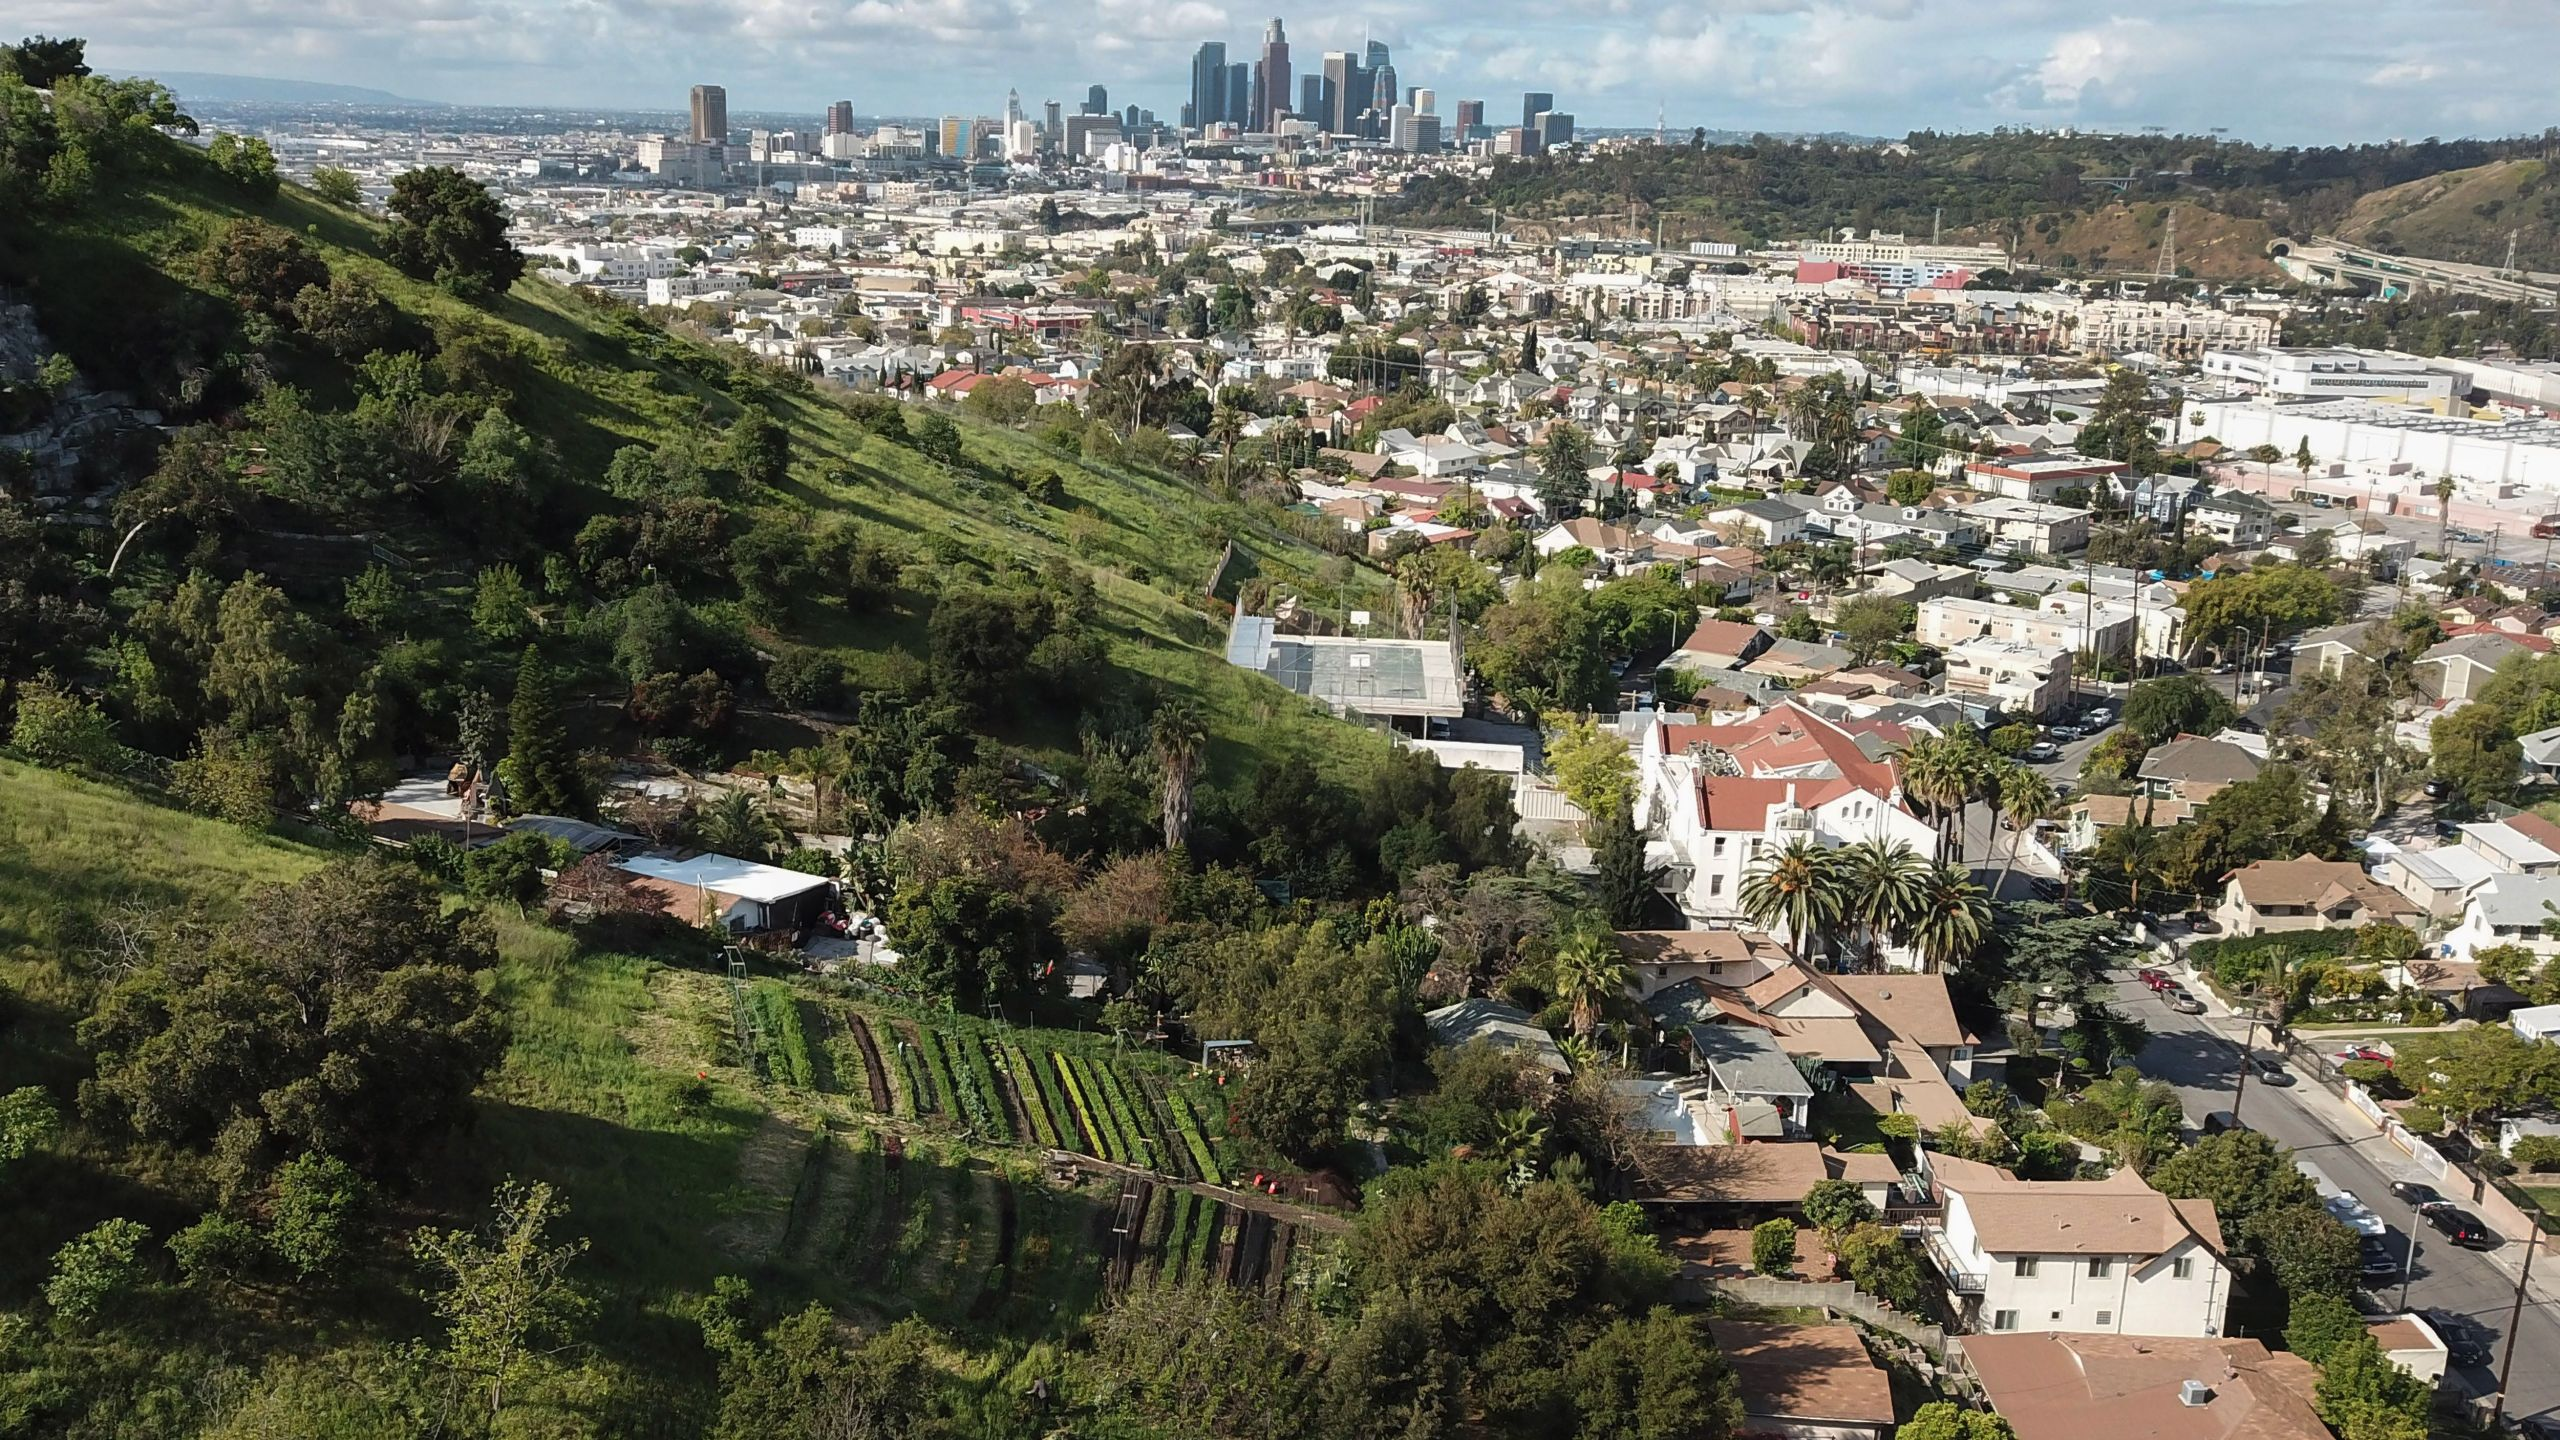 Aerial view of a small urban farm with the Los Angeles skyline in the background is seen on March 25, 2020. (ROBYN BECK/AFP via Getty Images)